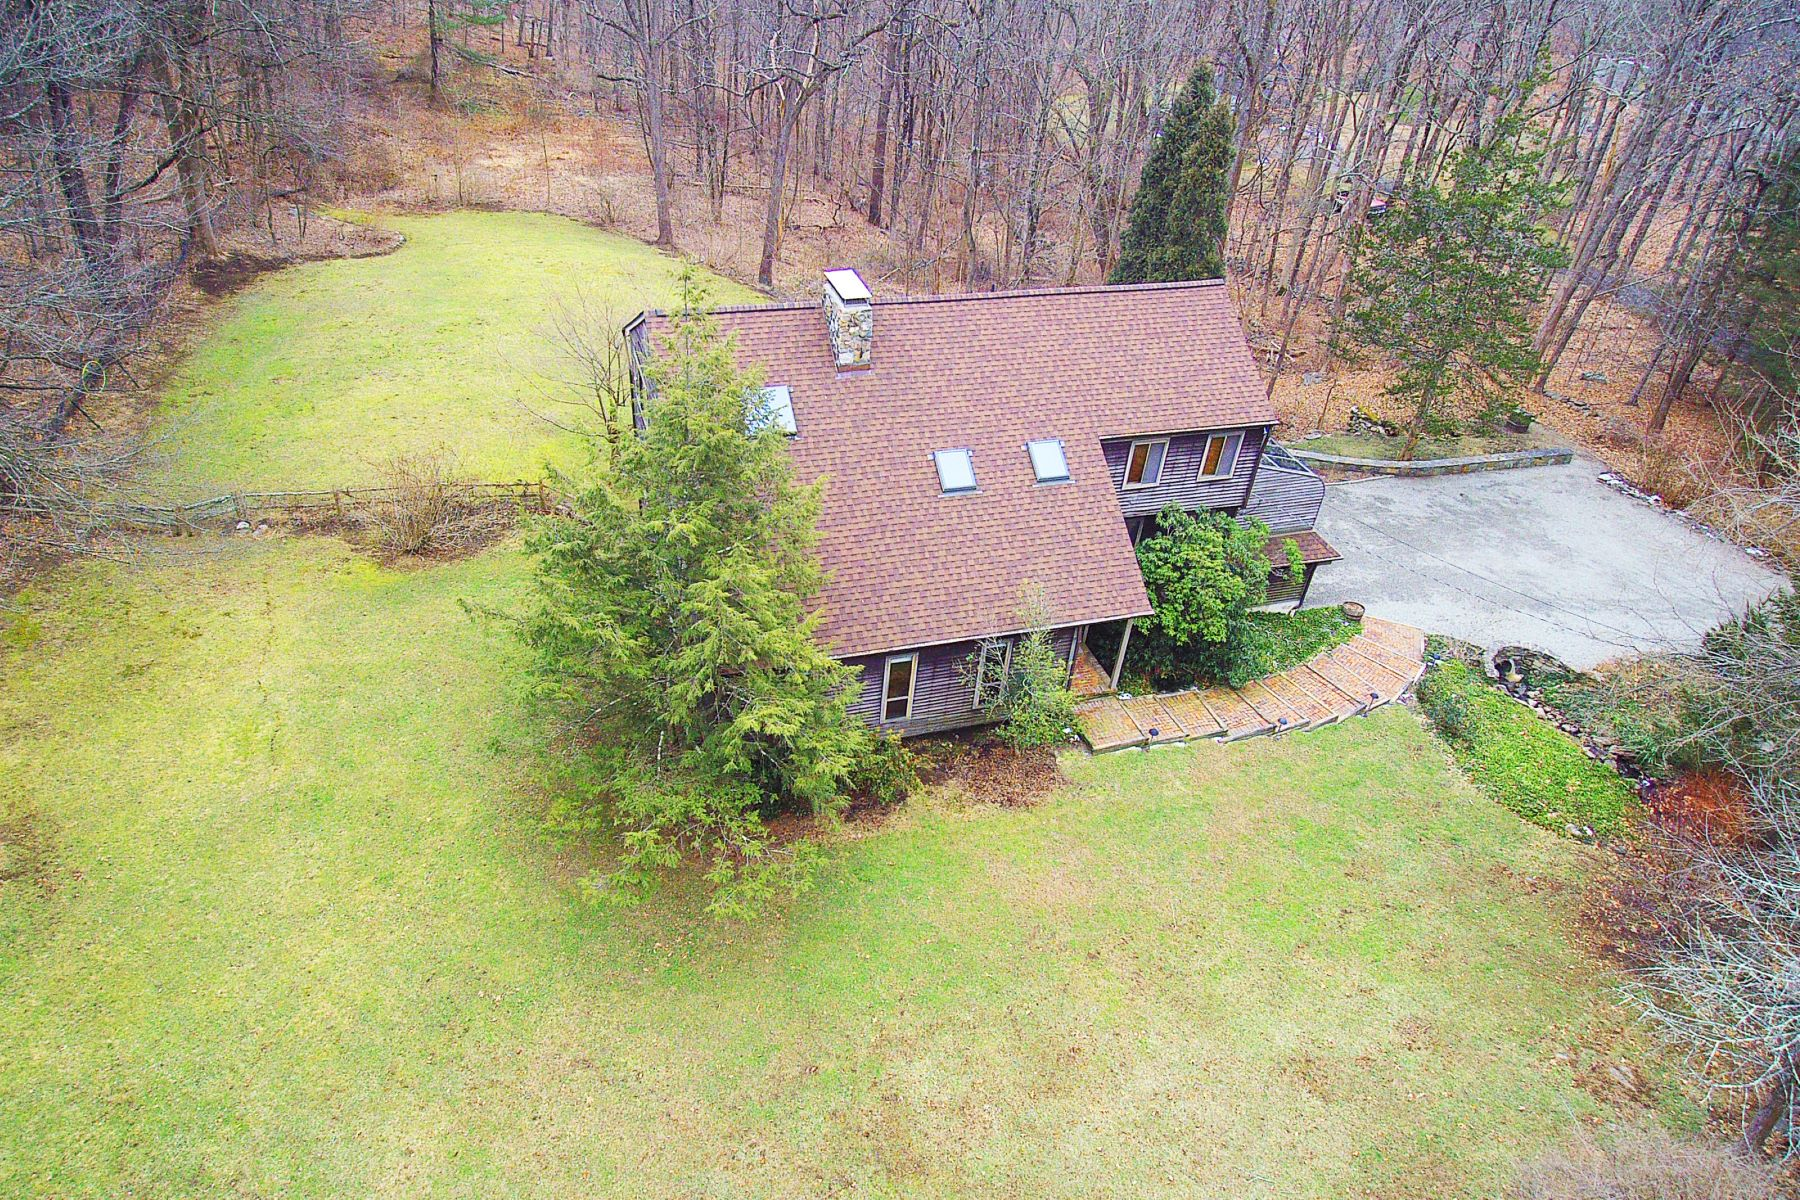 Single Family Homes for Sale at Idyllic Modern Country Retreat 24 Wood Rd Redding, Connecticut 06896 United States